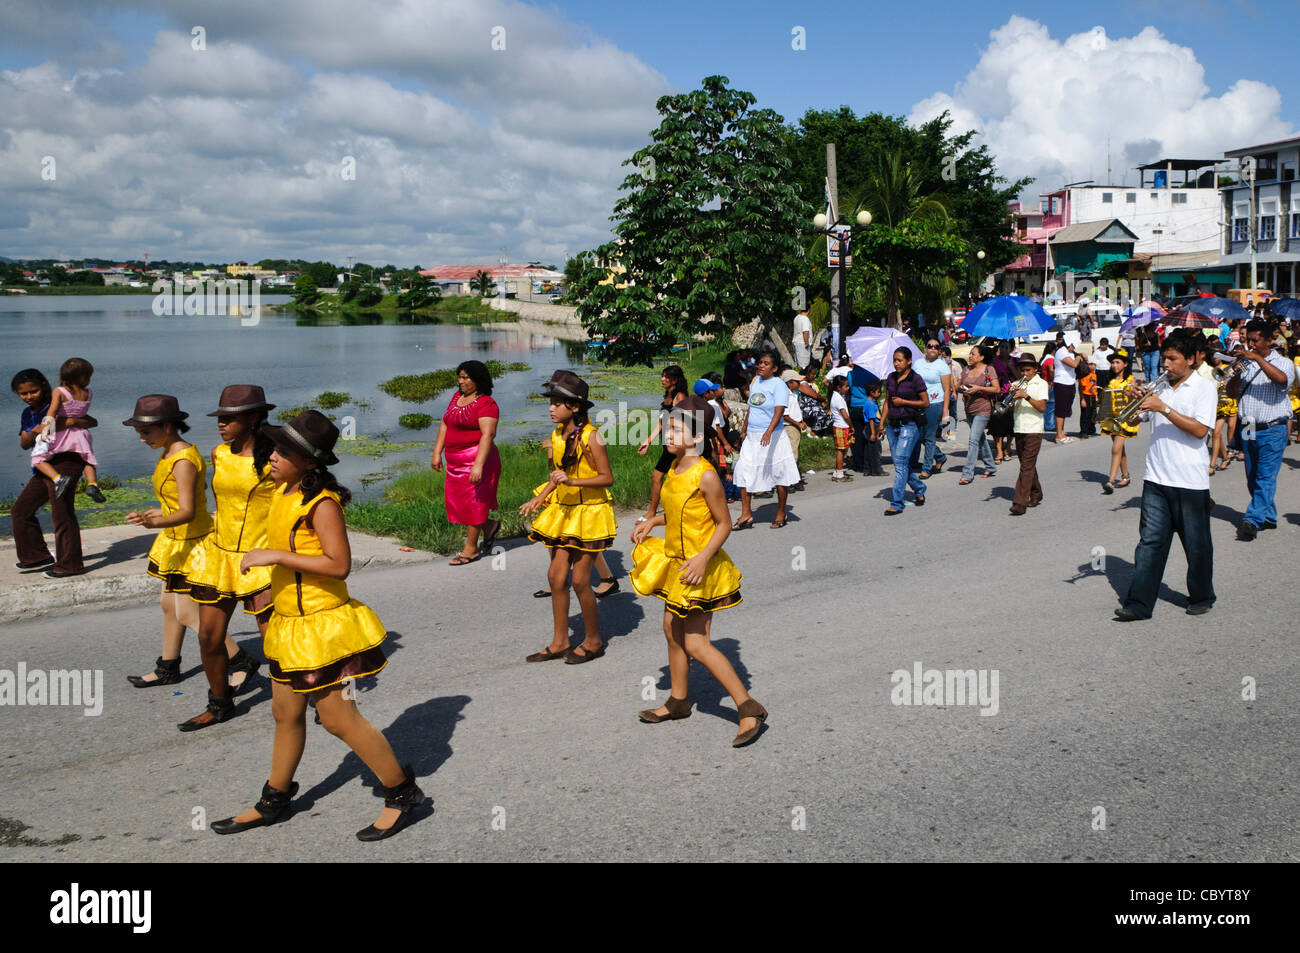 FLORES, Guatemala - As part of the celebrations for Guatemalan Independence Day (September 15, 2011), groups of - Stock Image